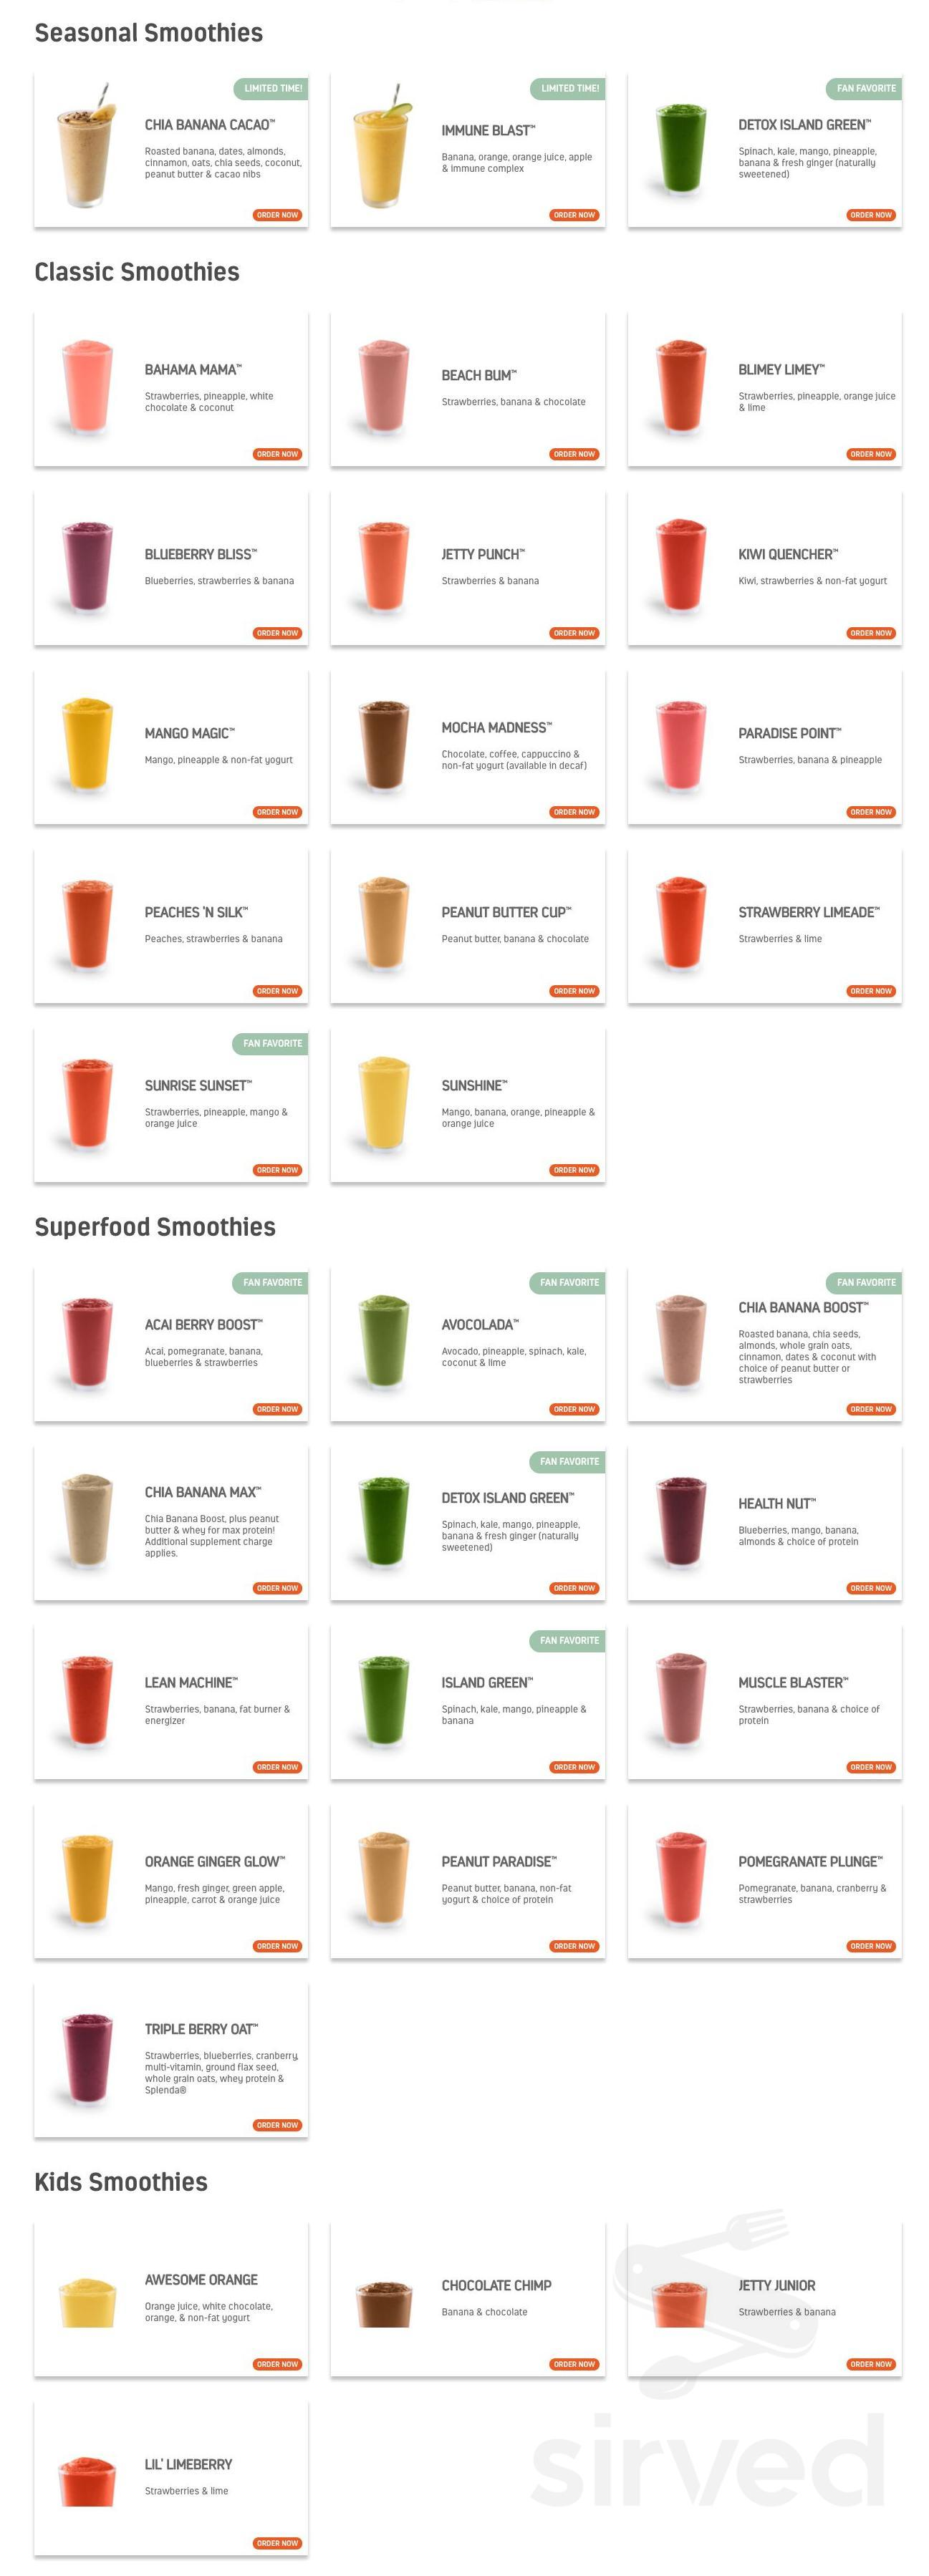 Tropical Smoothie Cafe Menu In Princeton New Jersey Usa